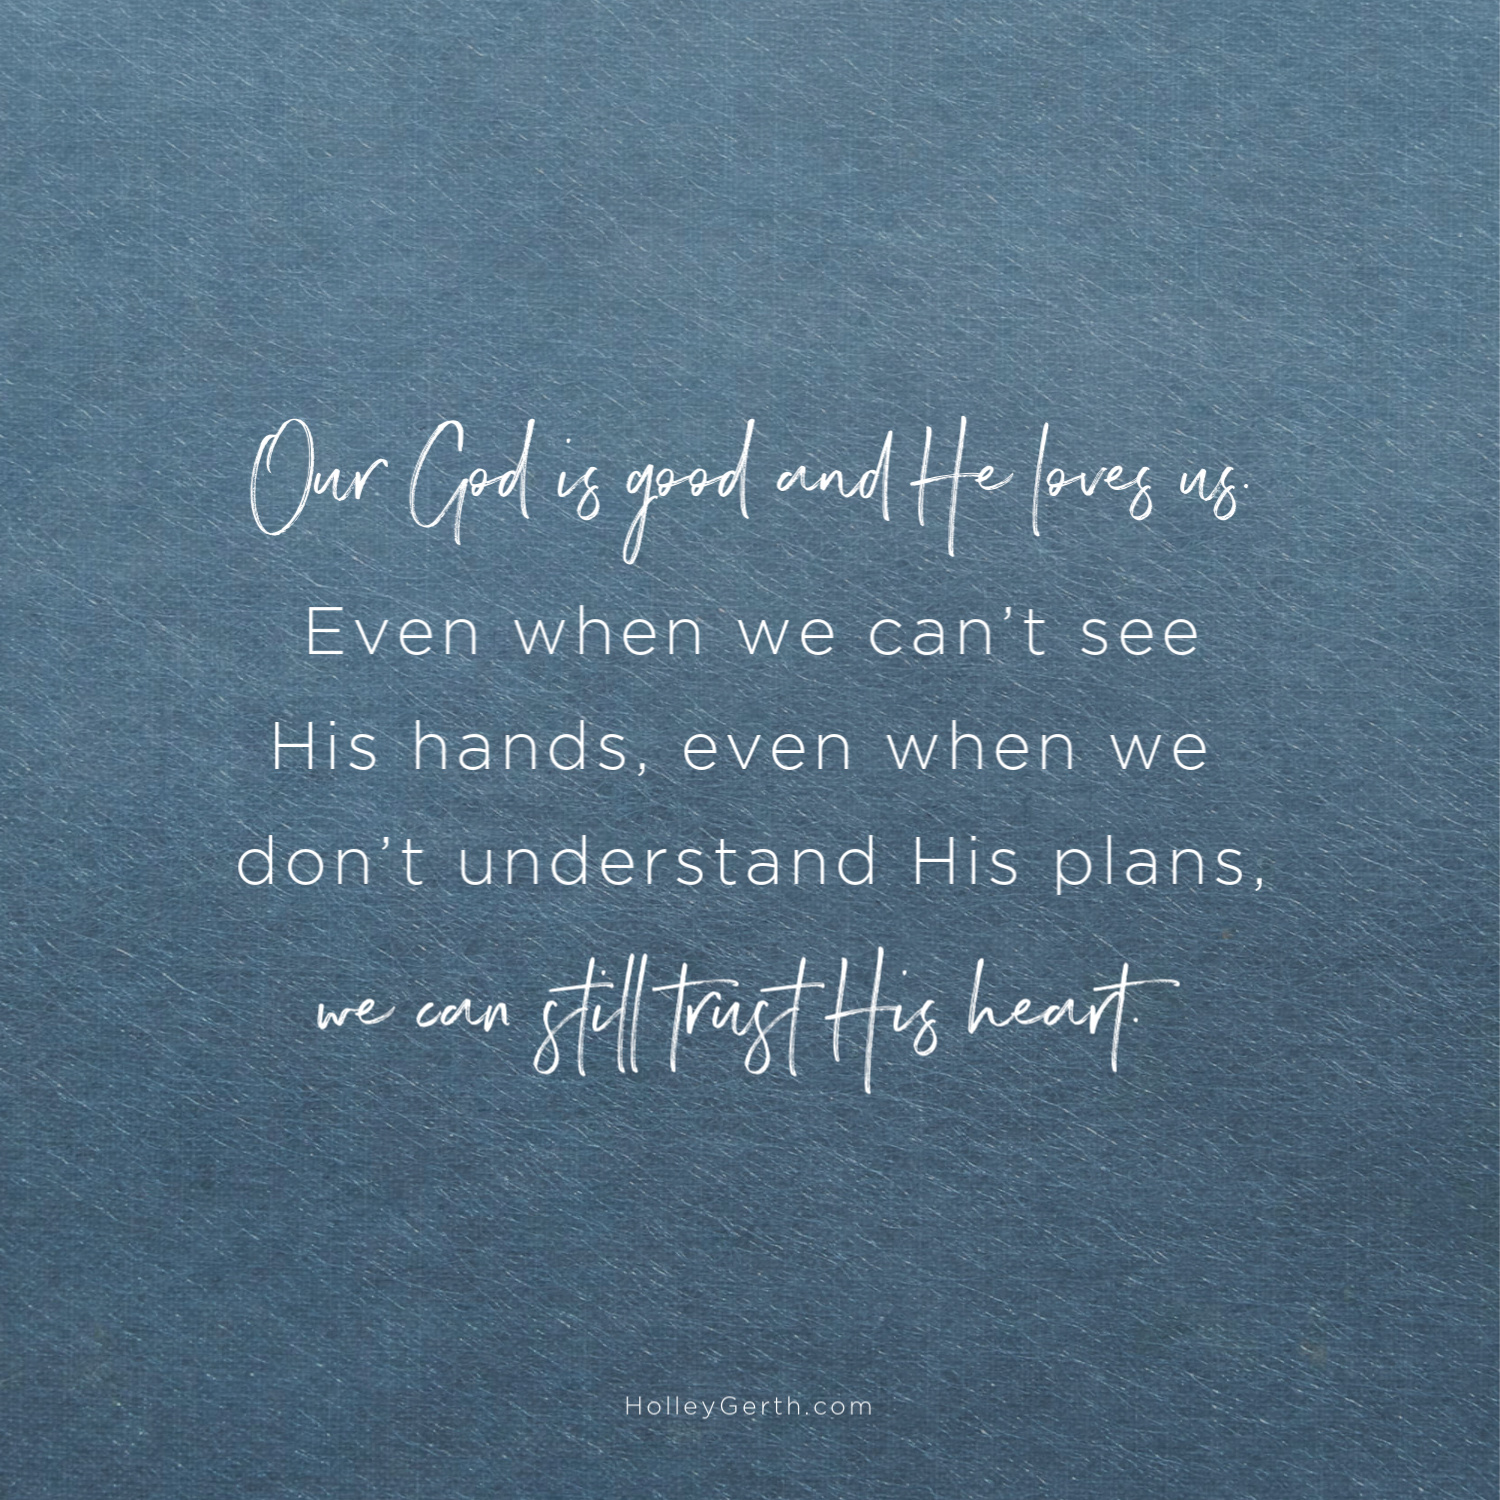 Our God is good, and He loves us. Even when we can't see His hands, even when we don't understand His plans, we can still trust His heart.